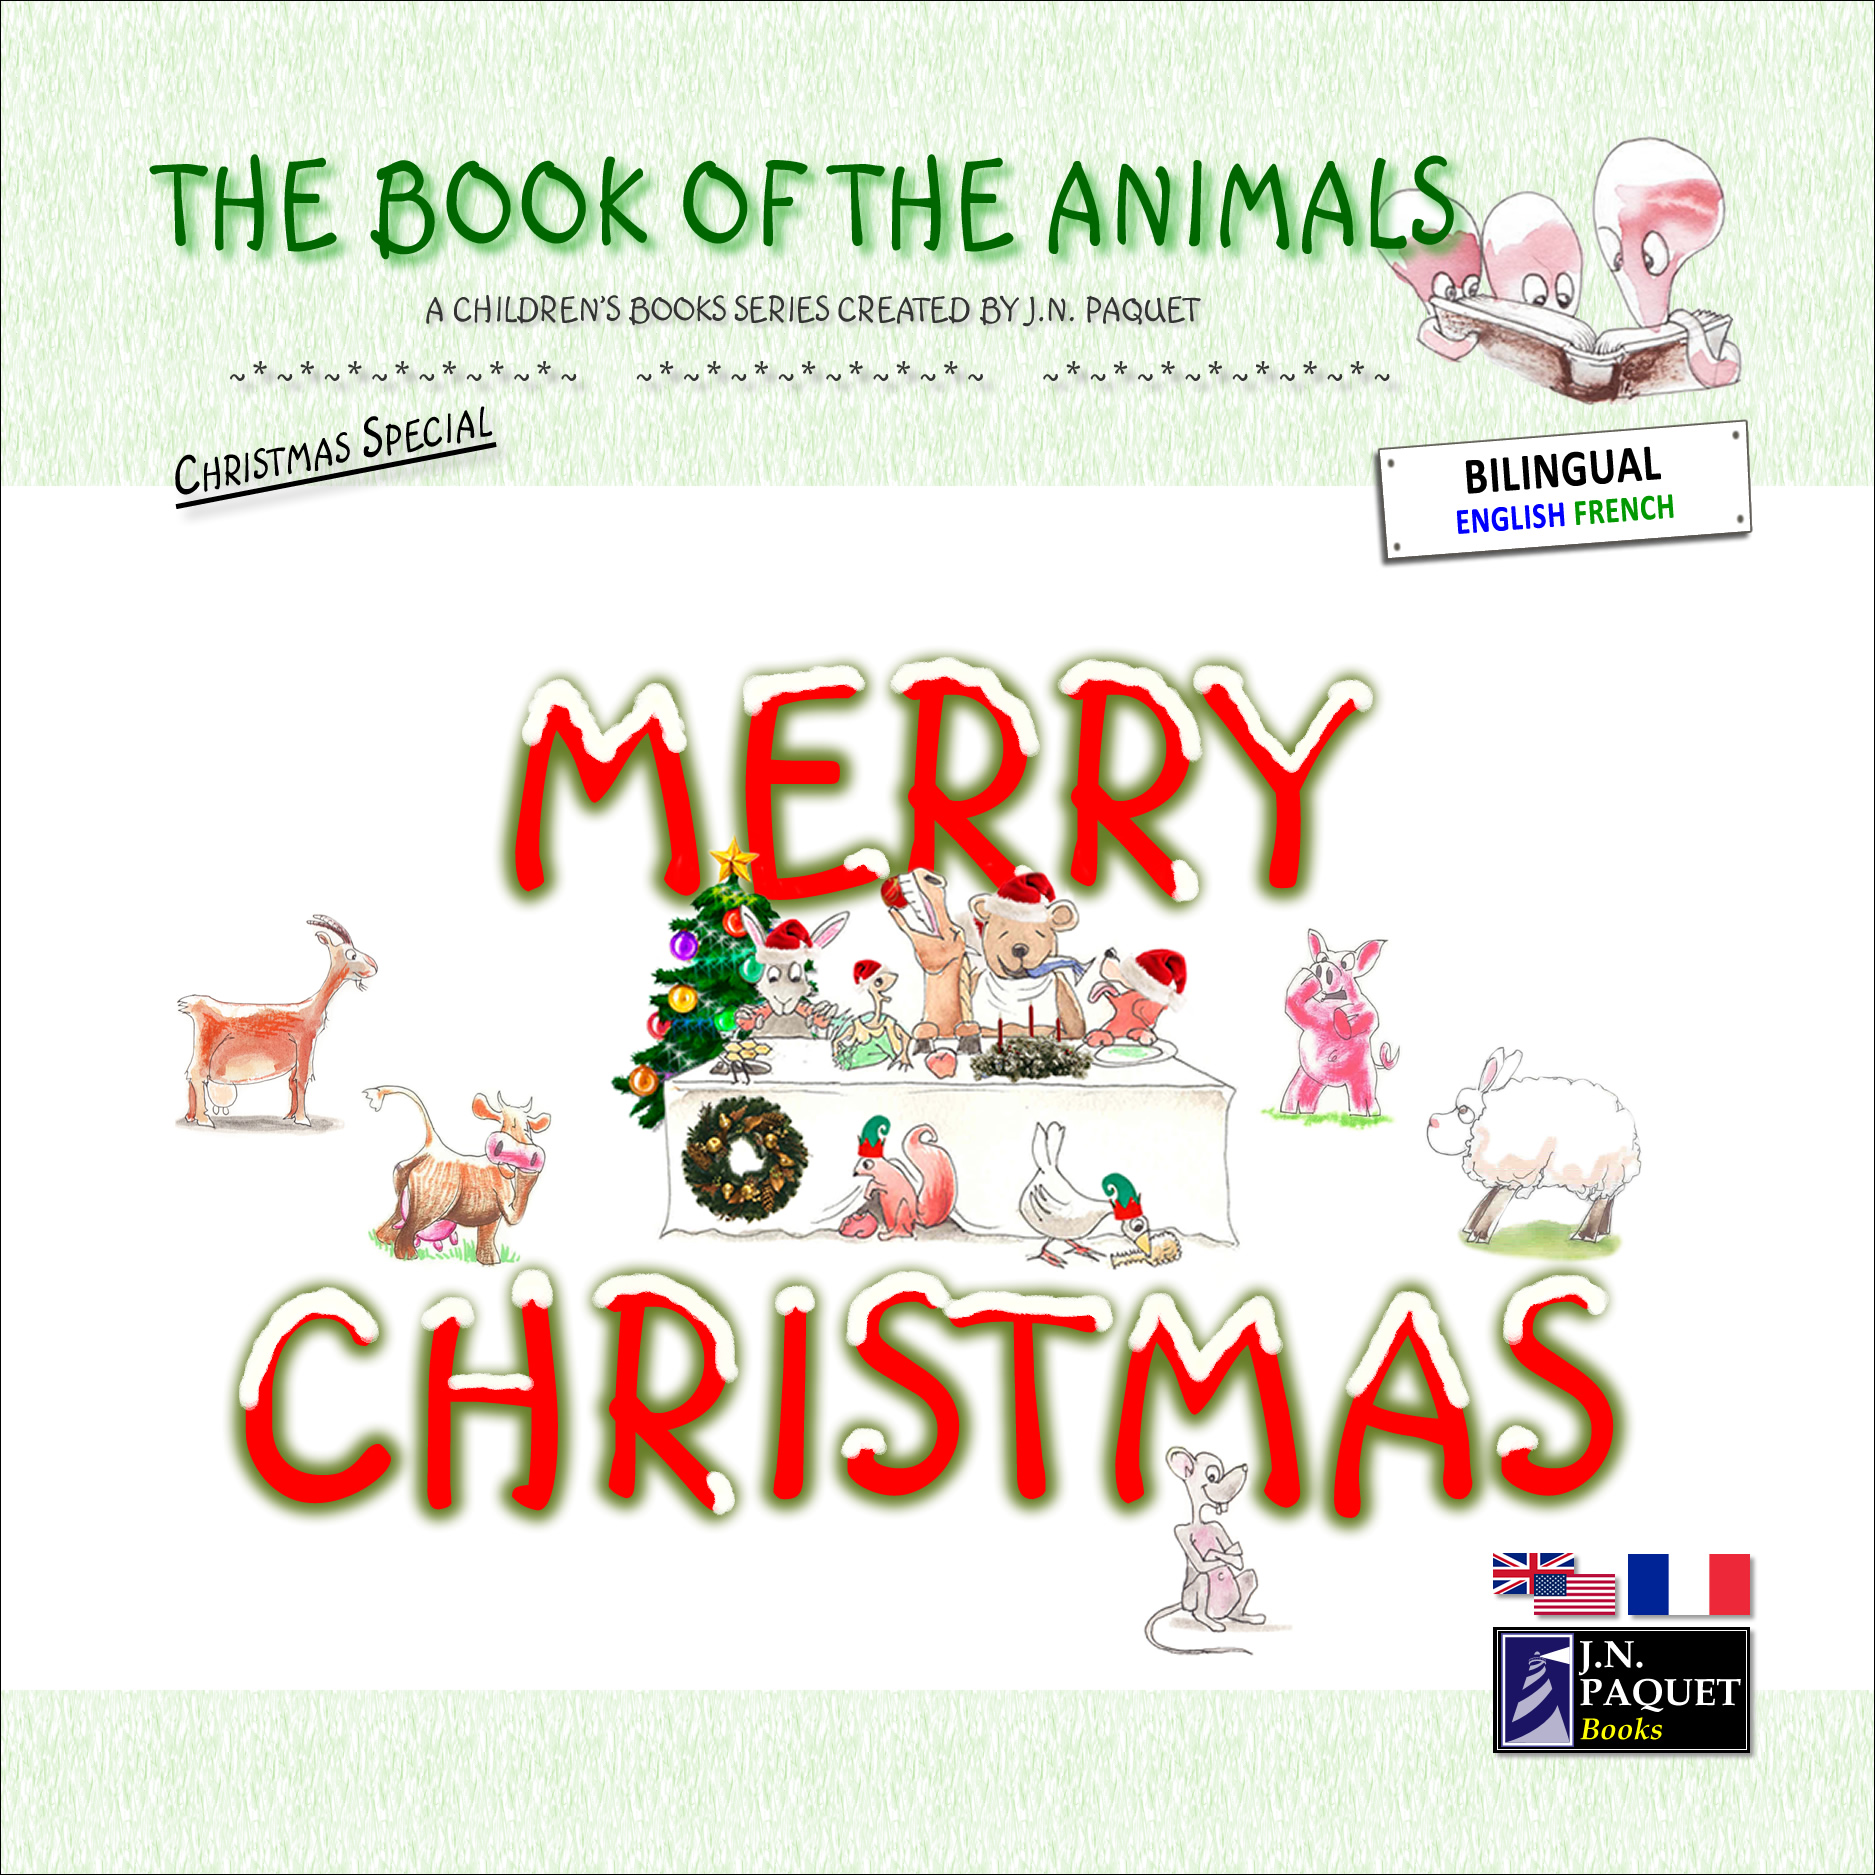 The Book of The Animals - Merry Christmas (Bilingual English-French) By: J.N. PAQUET